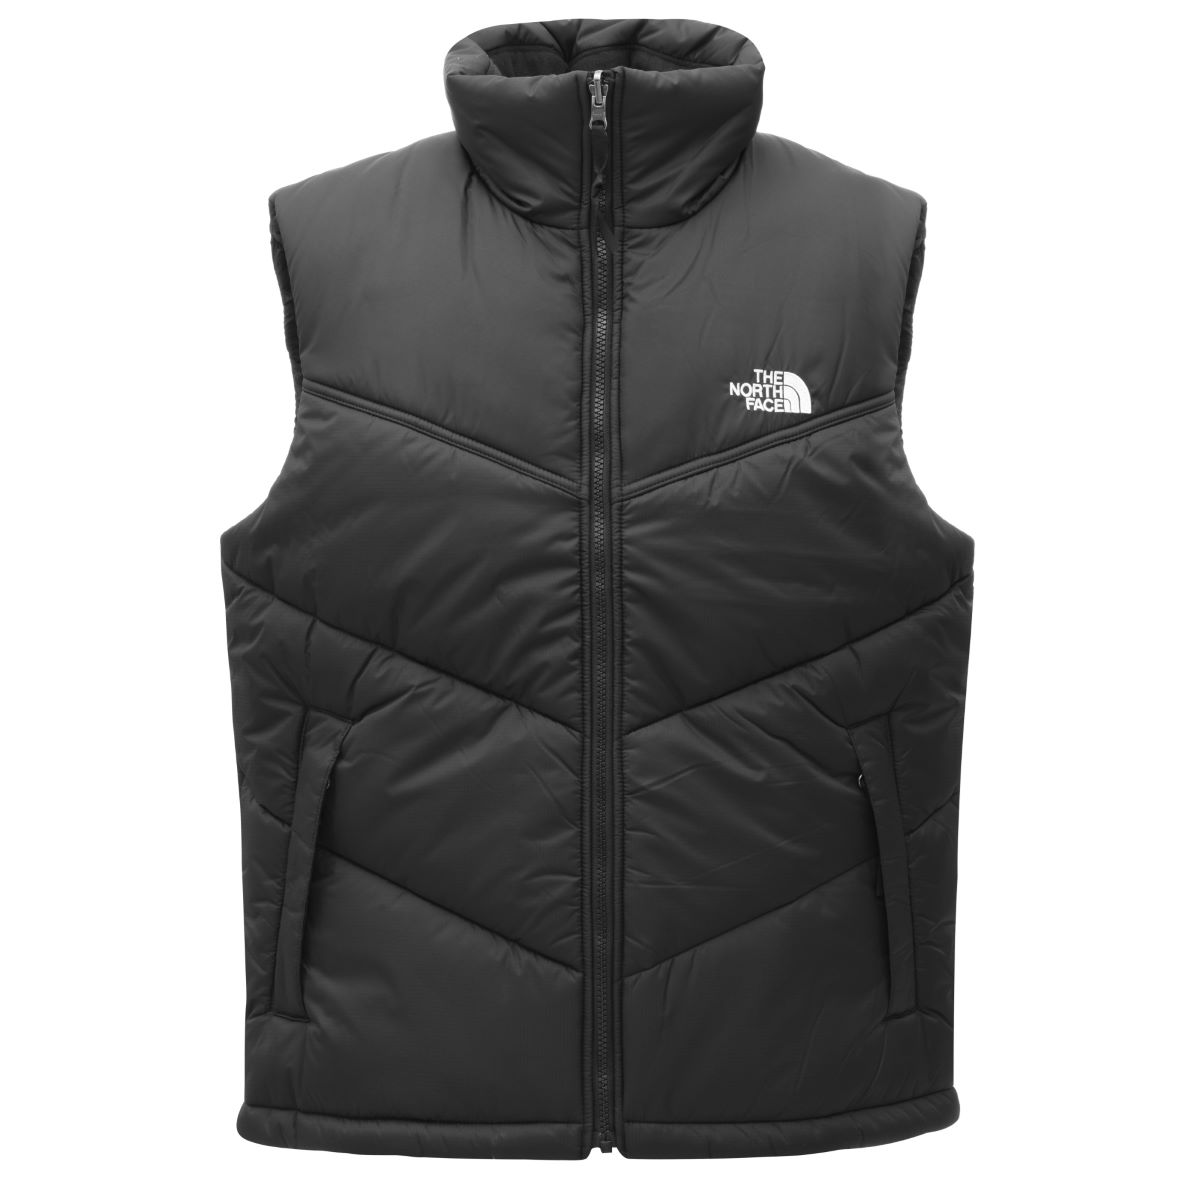 The North Face The North Face Saikuru Gilet   Gilets